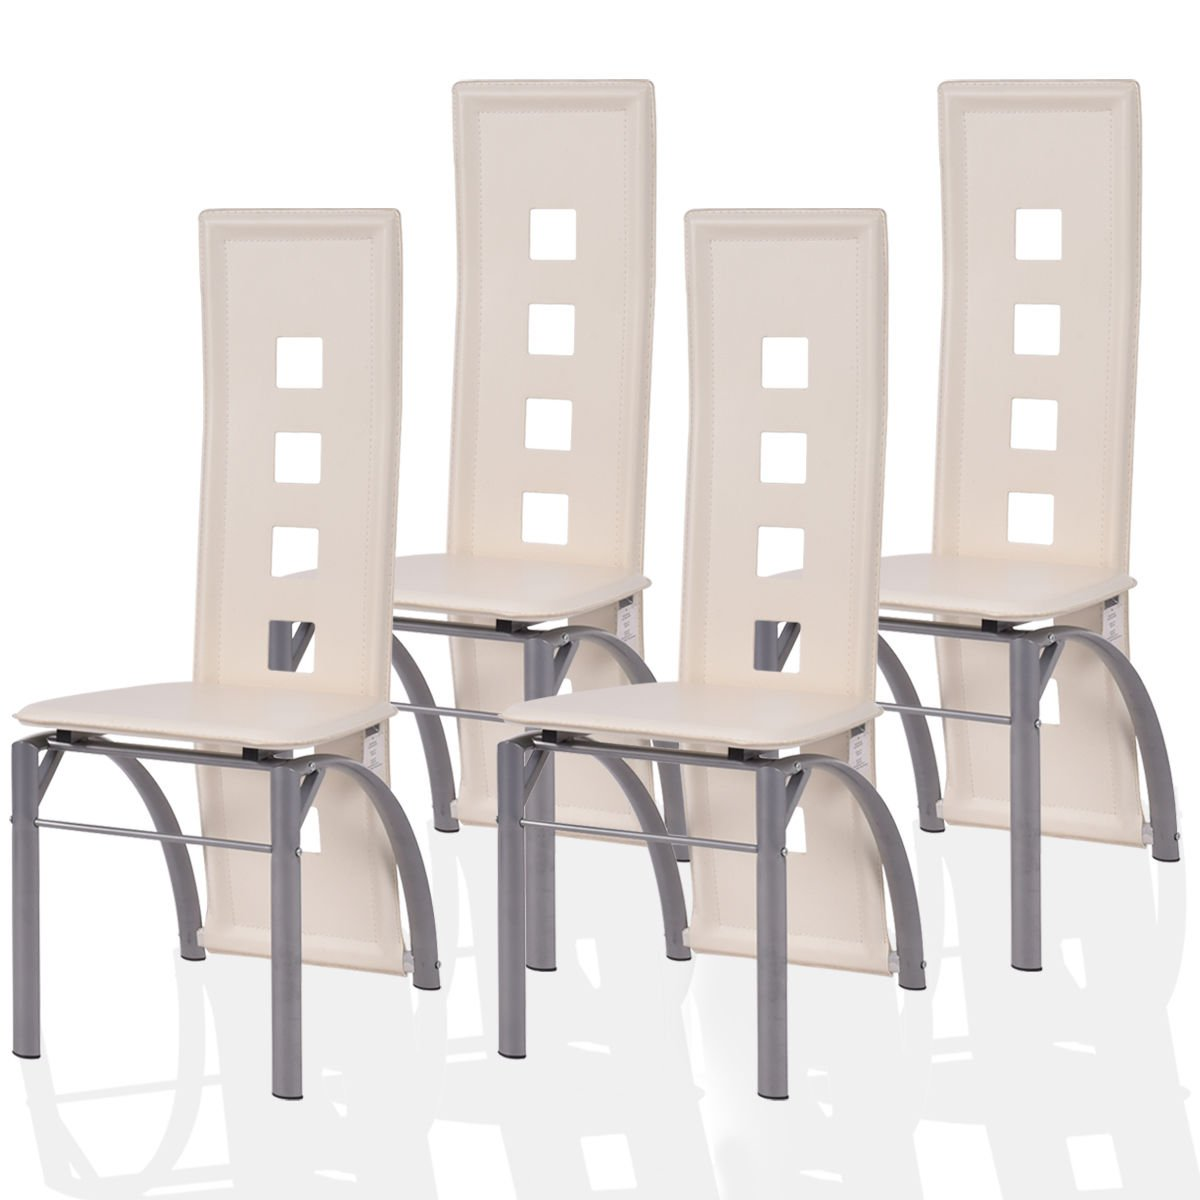 Amazon.com   Giantex 4 Pcs Dining Chairs PU Leather Steel Frame High Back  Contemporary Home Furniture (White)   Chairs